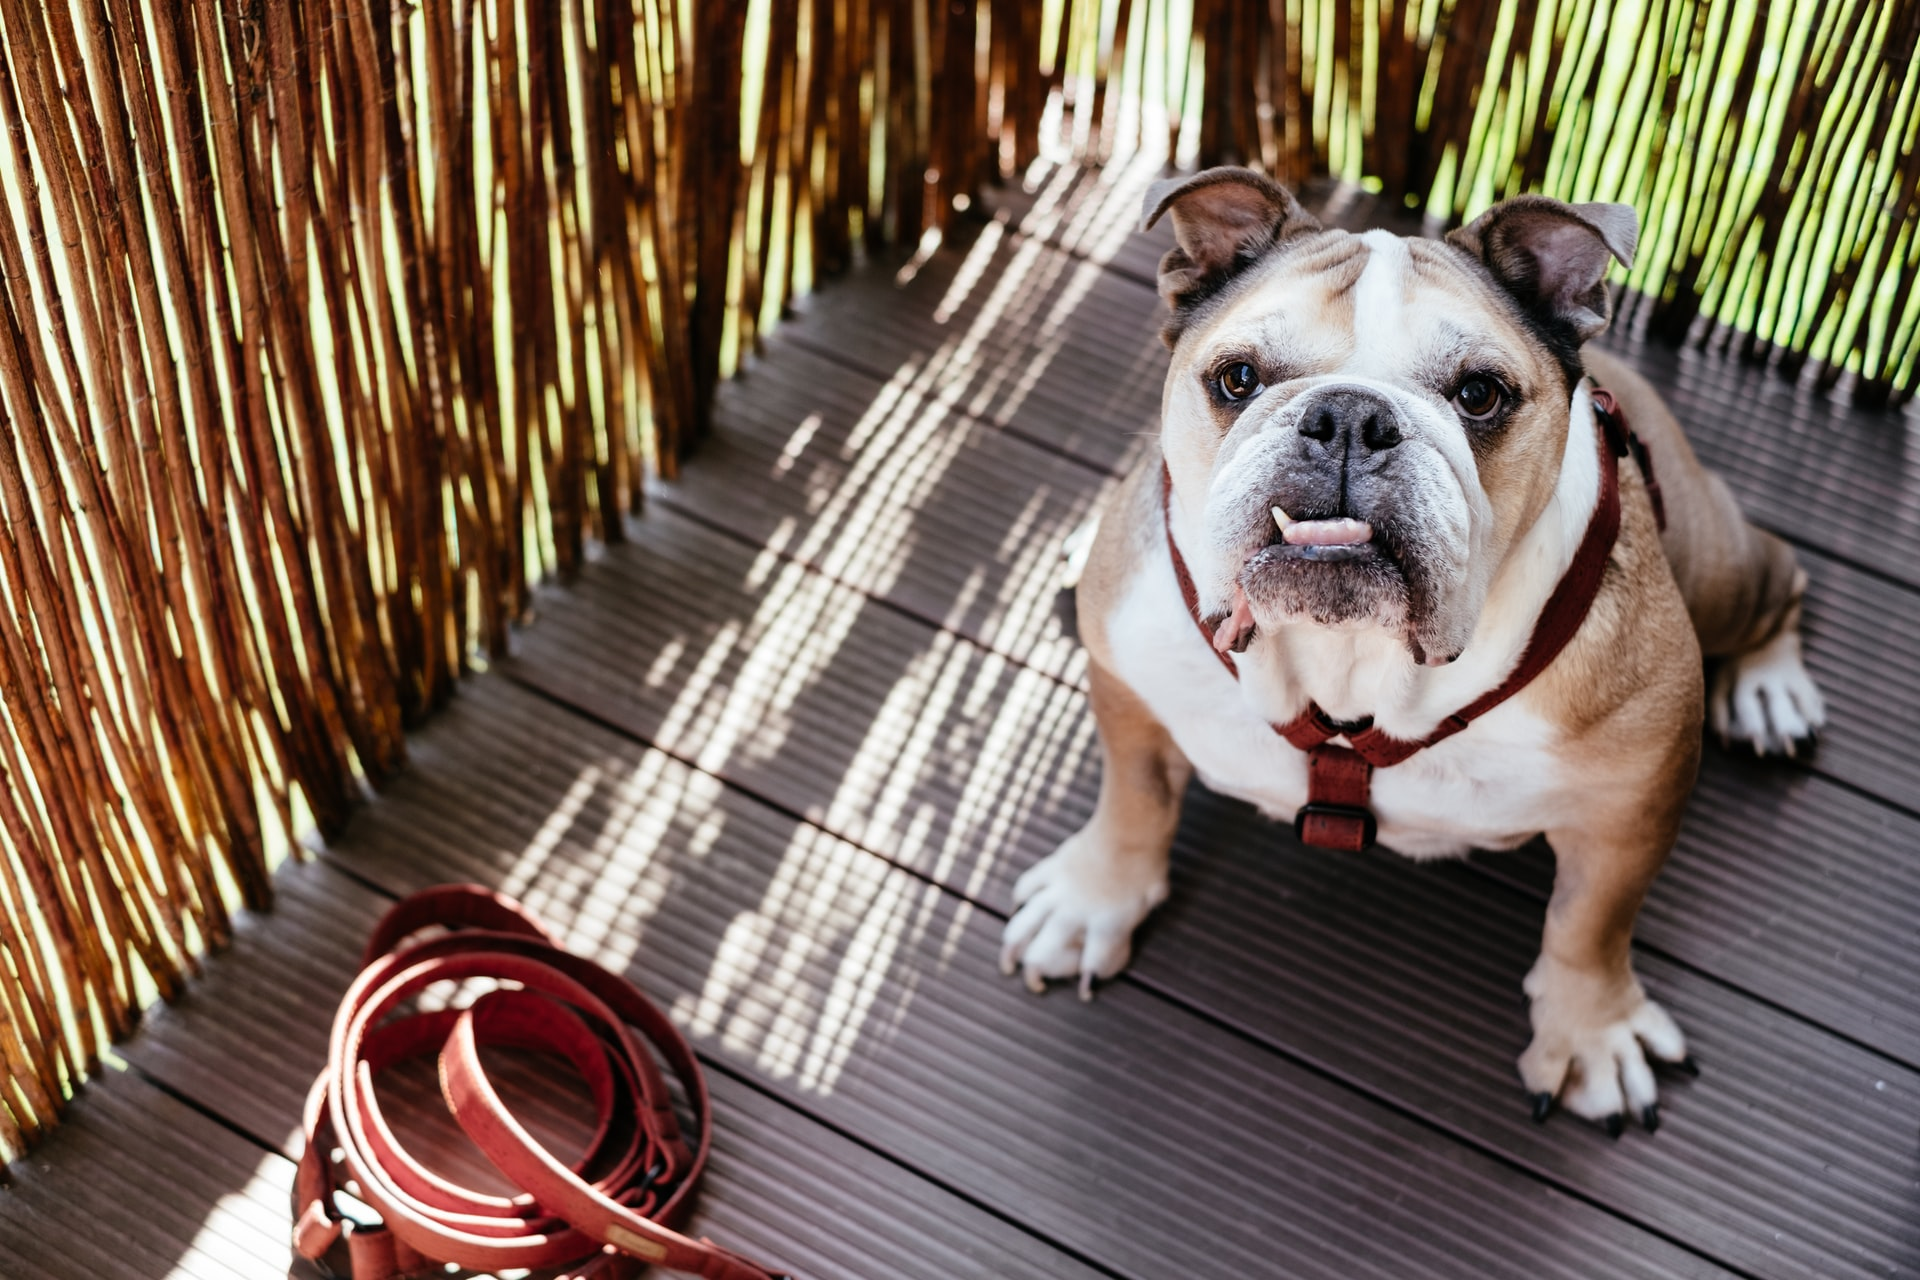 A brown and white bulldog sitting on the porch of a house